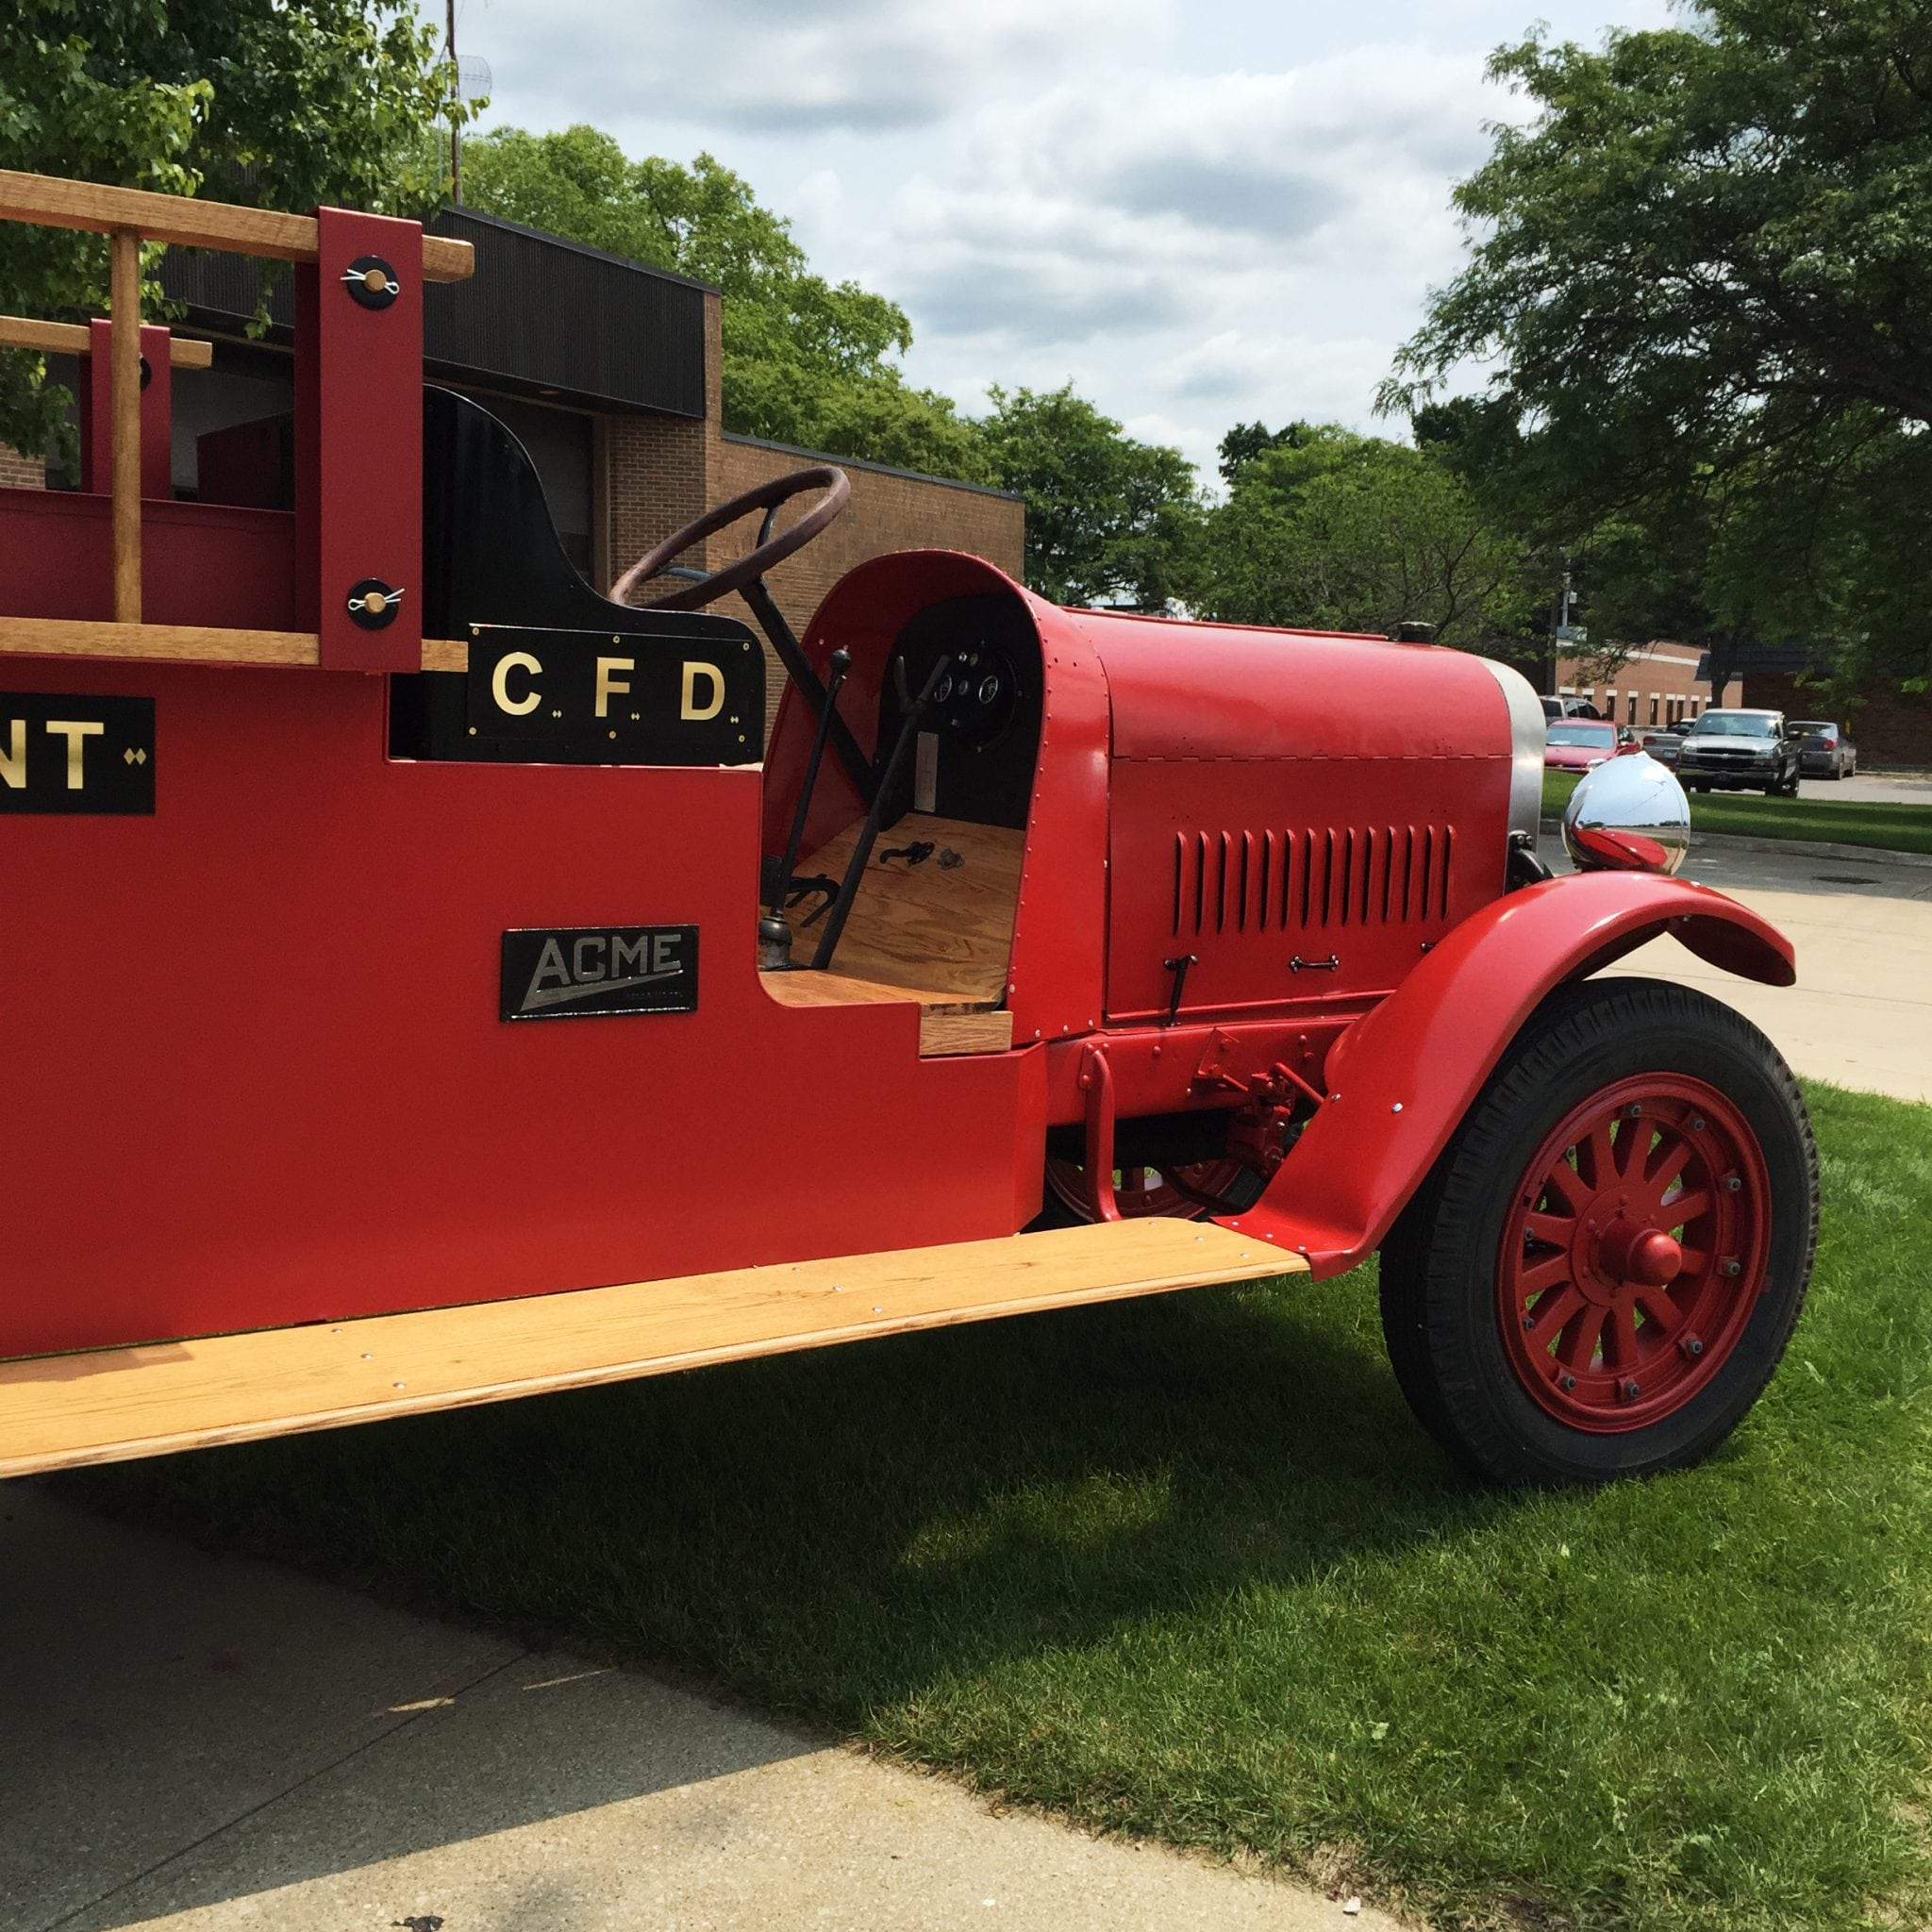 Antique fire truck showing rich history of Cadillac Castings